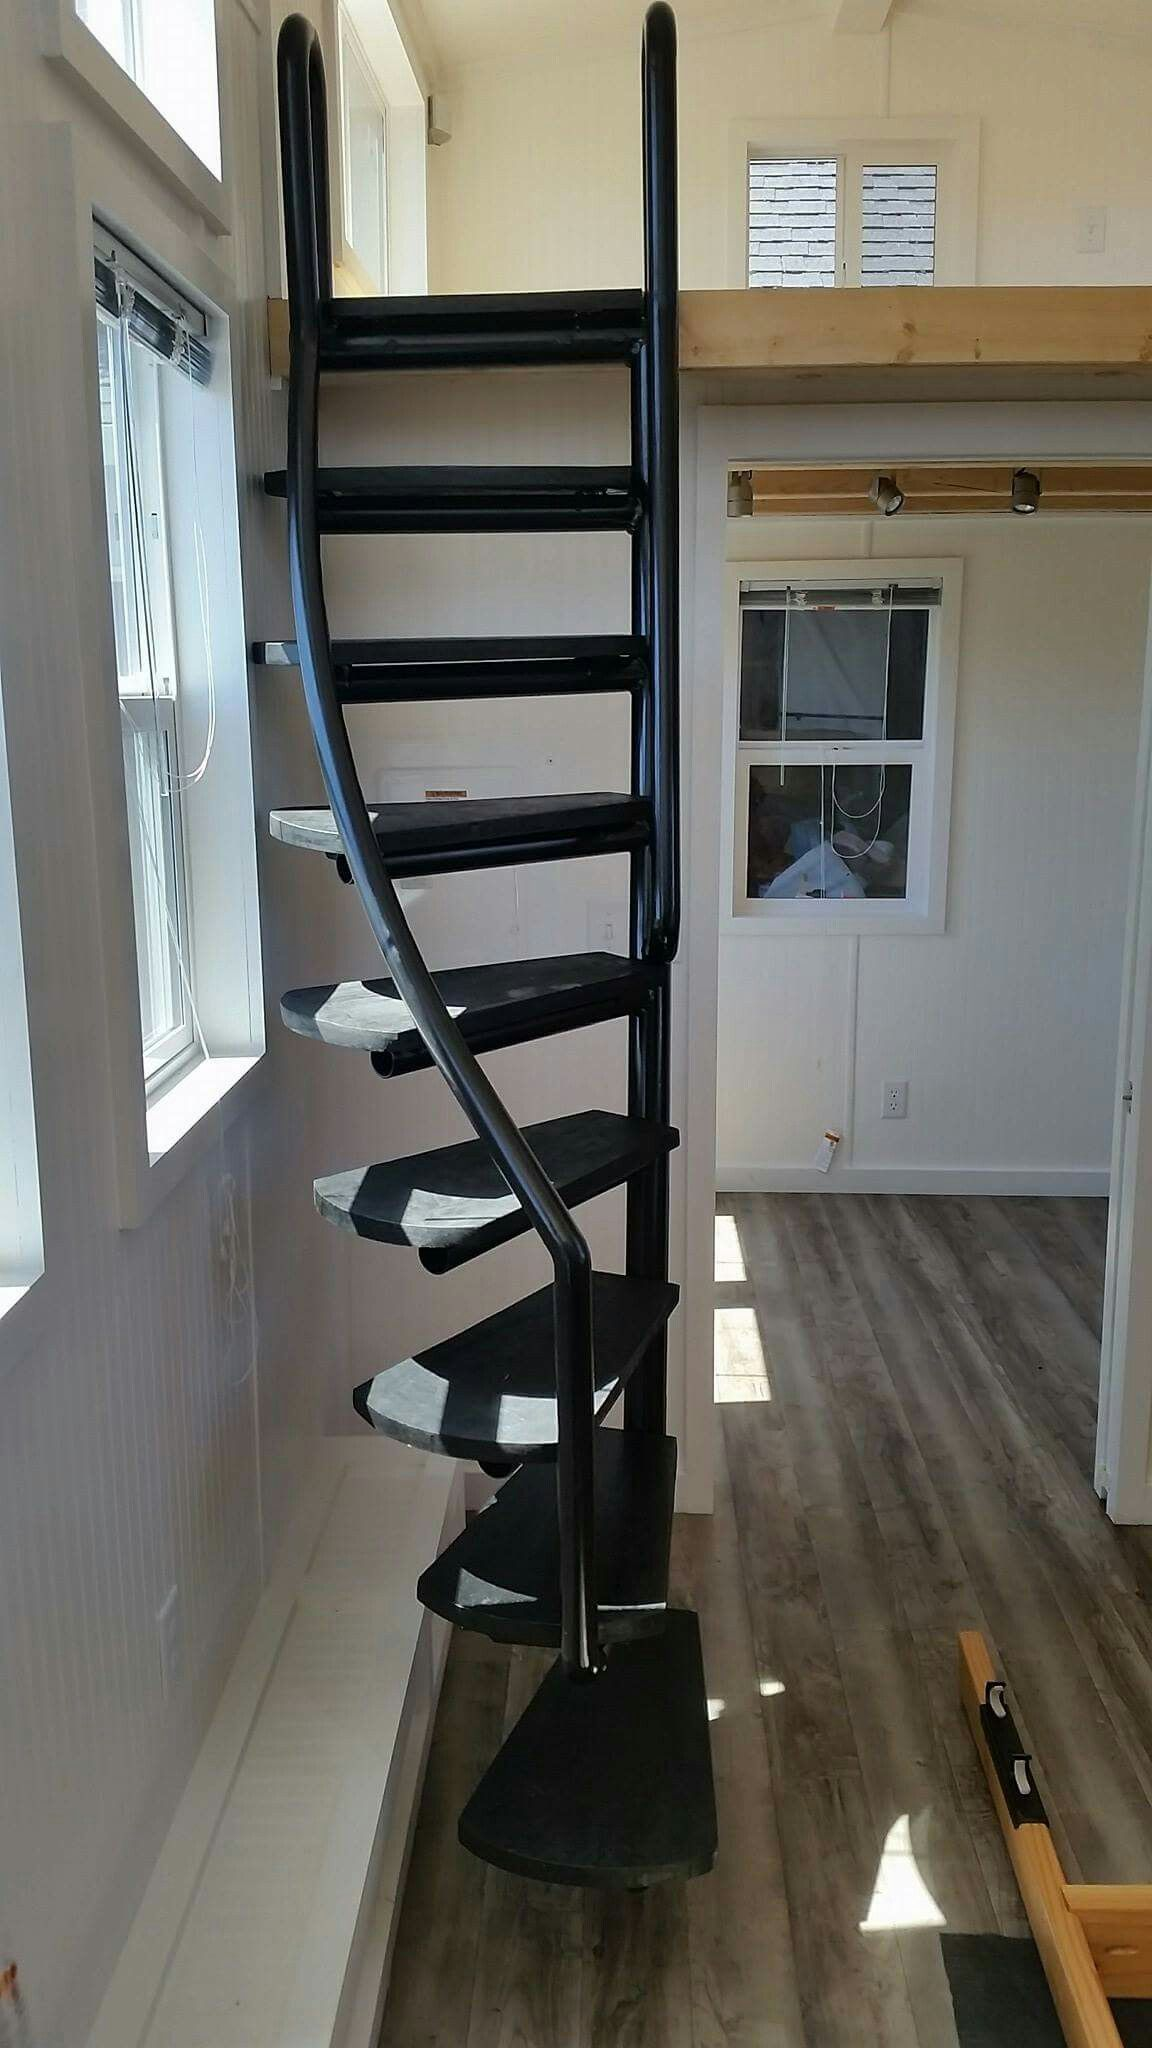 10 Crazy Tips And Tricks Attic Ideas Apartment Attic Storage Floor Simple Attic Remodel Attic Staircase Built Ins At Attic Staircase Attic Ladder House Stairs